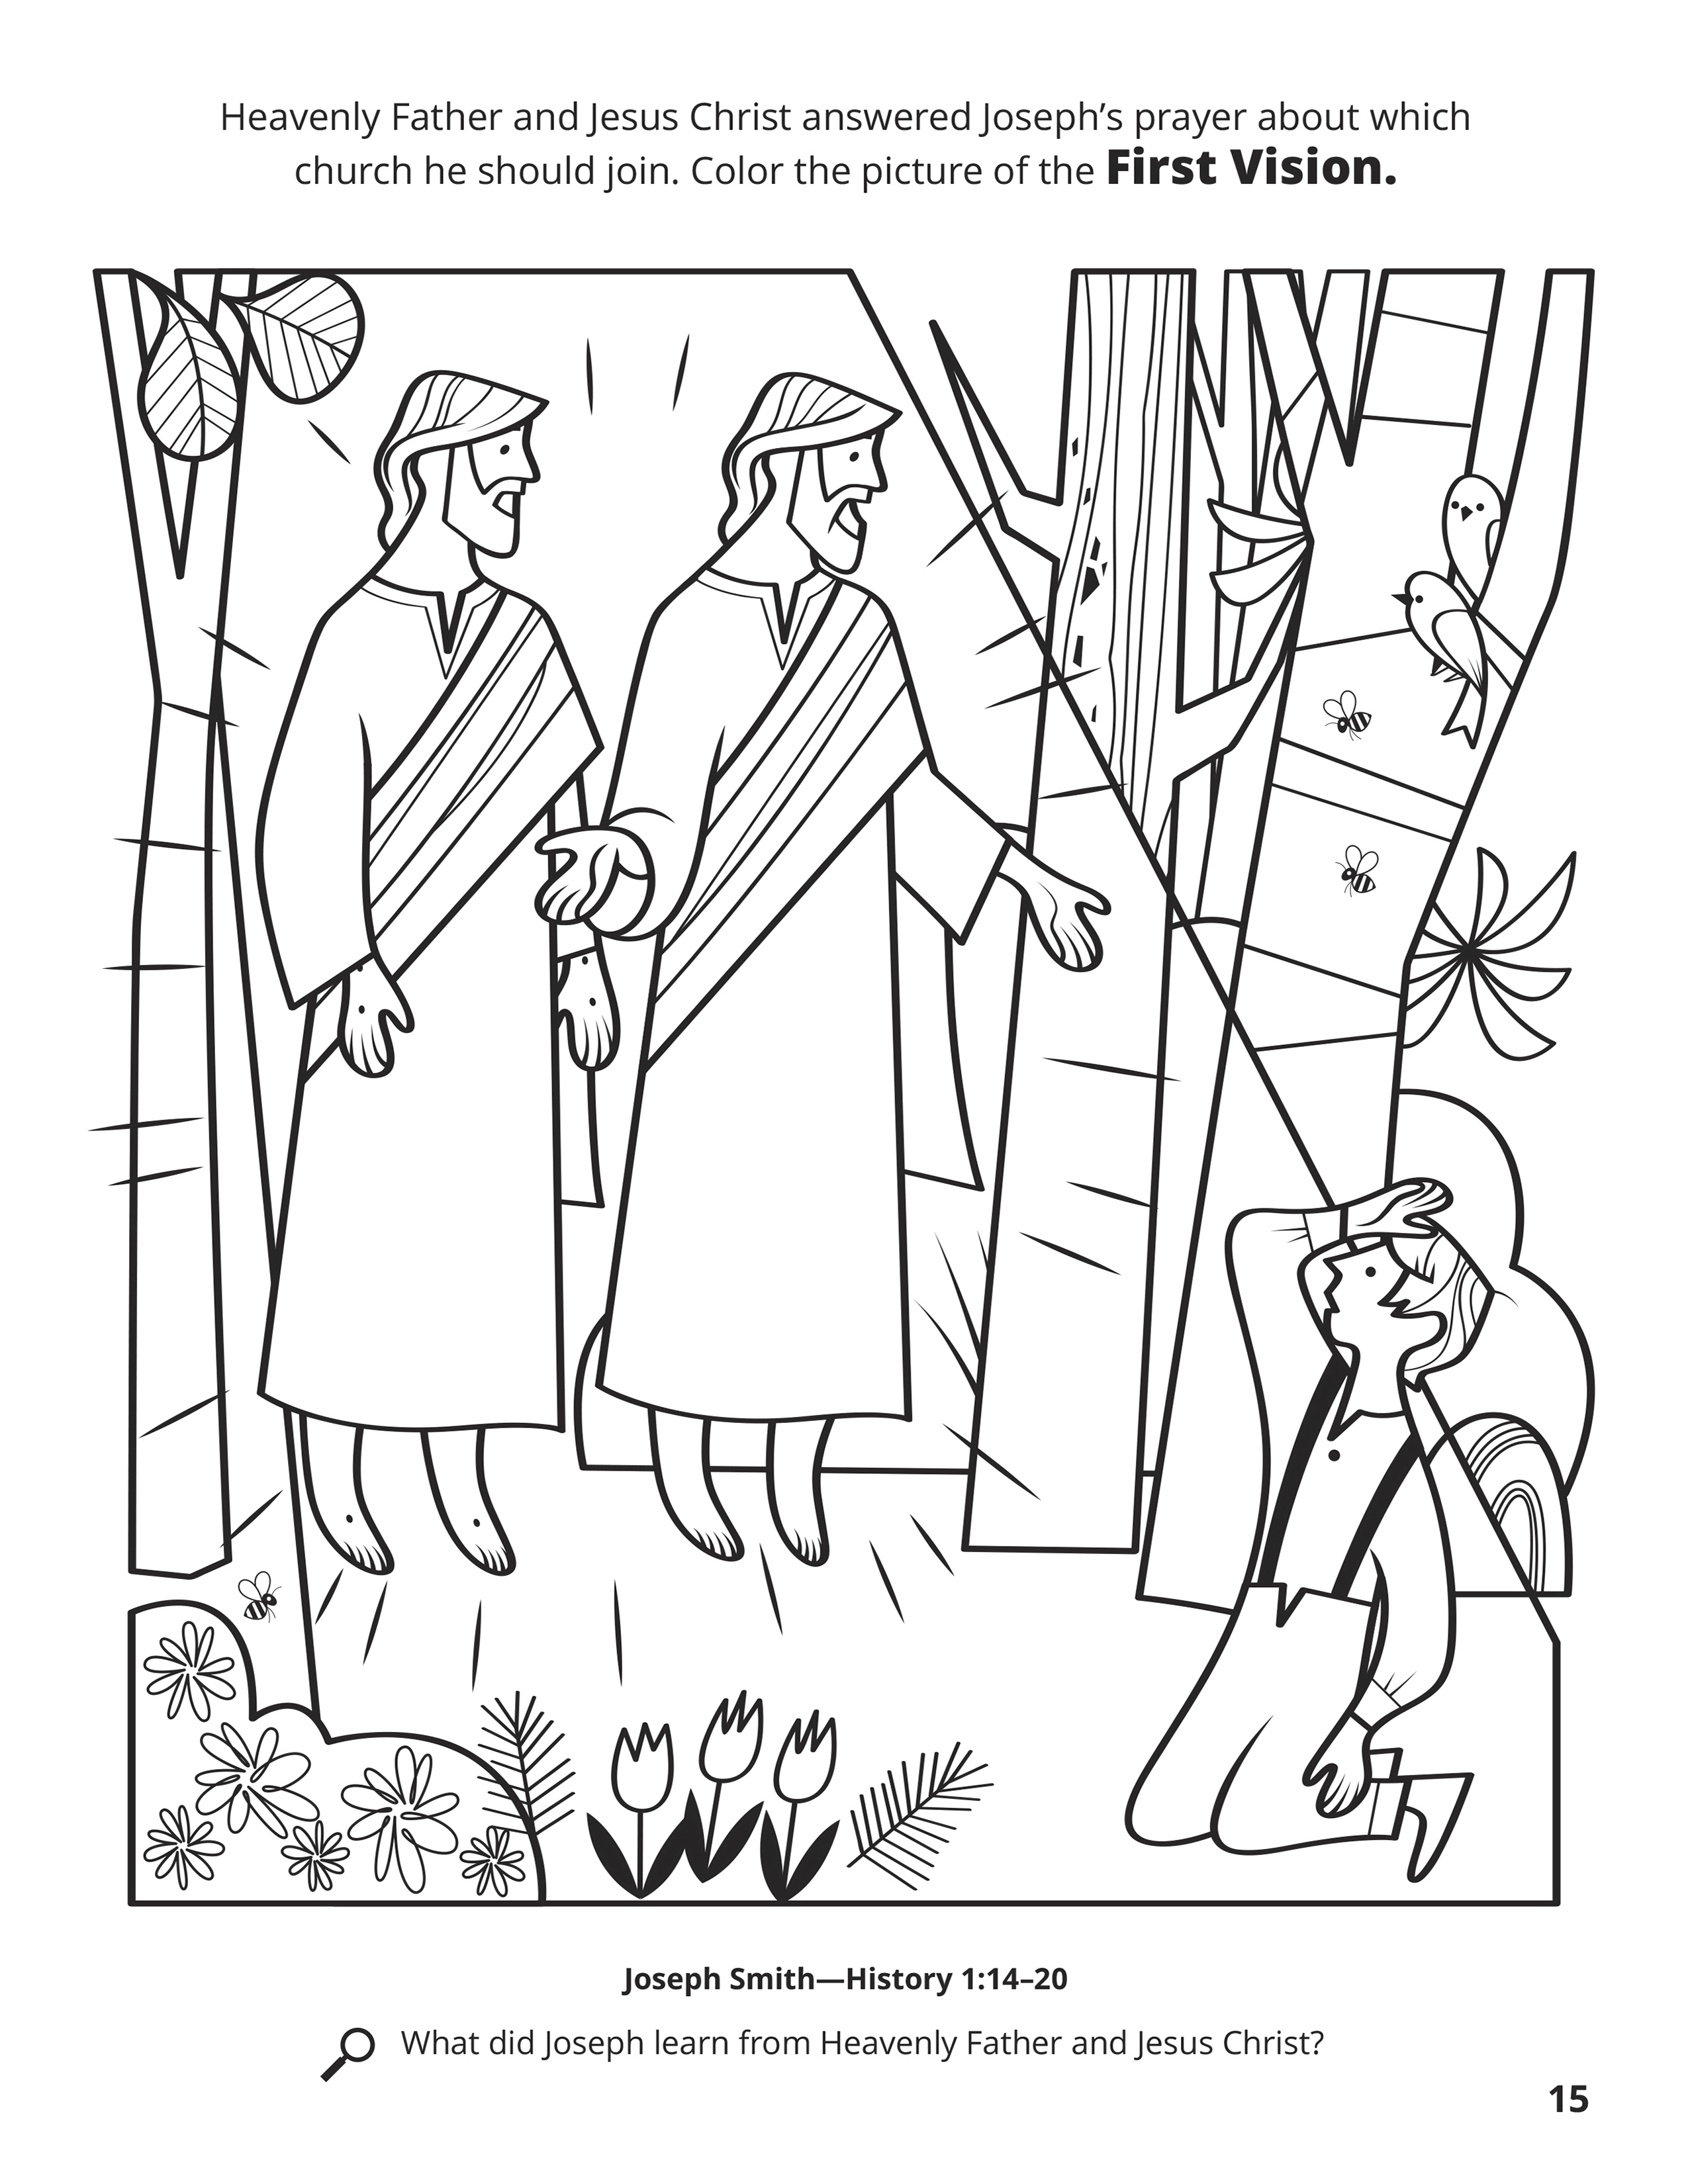 Joseph Smith First Vision Coloring Page : joseph, smith, first, vision, coloring, First, Vision